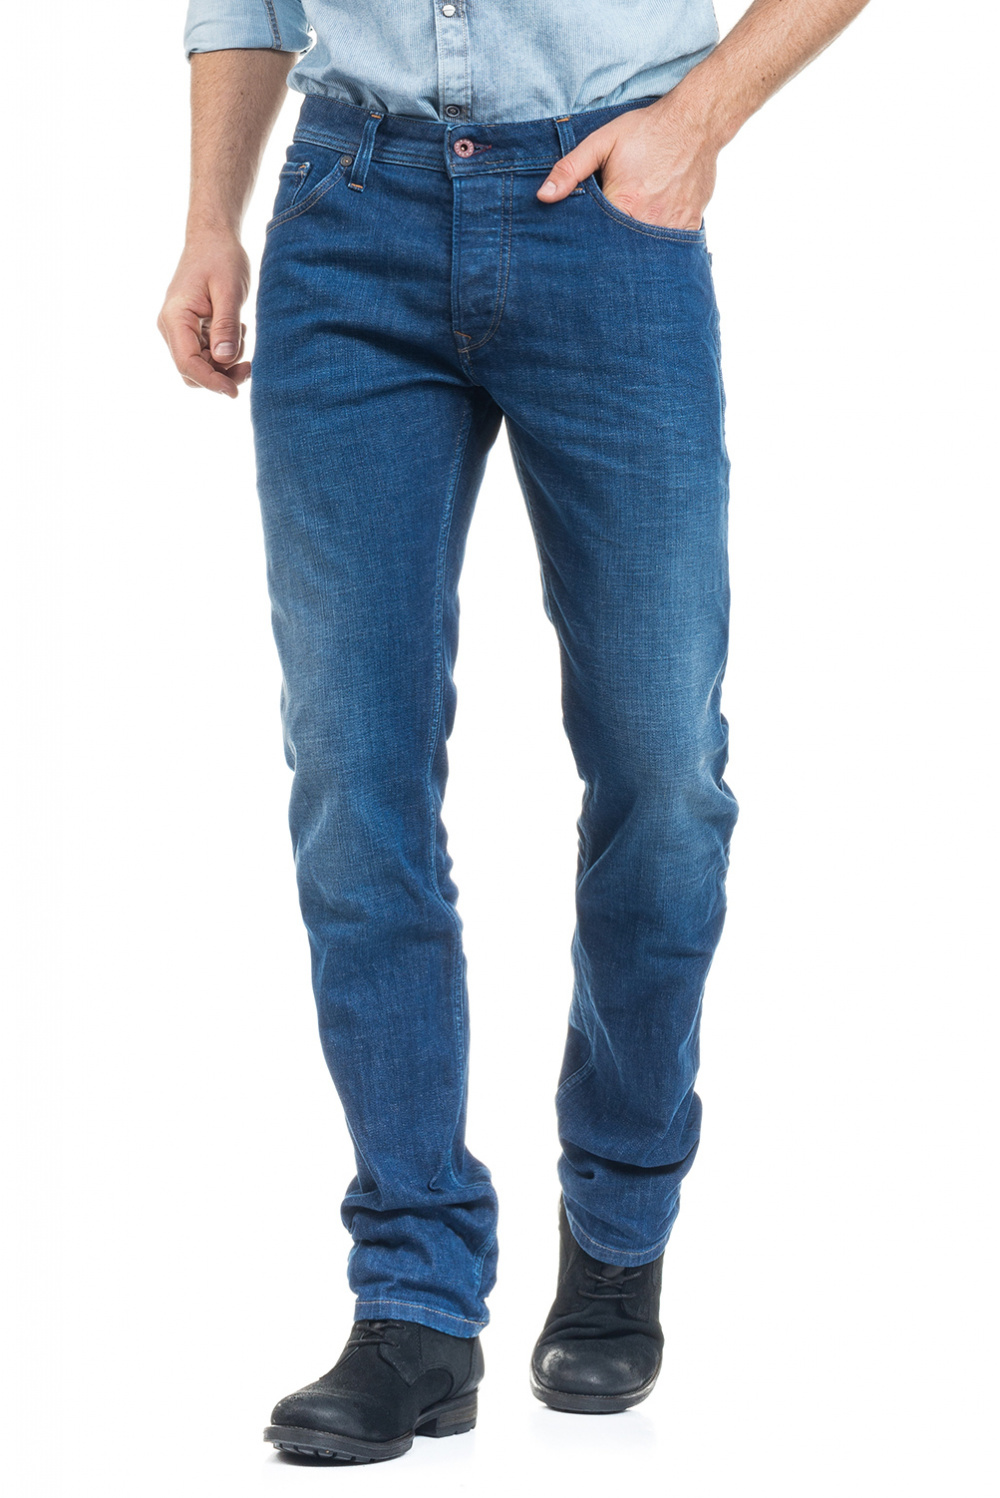 Lima jeans with intense medium wash